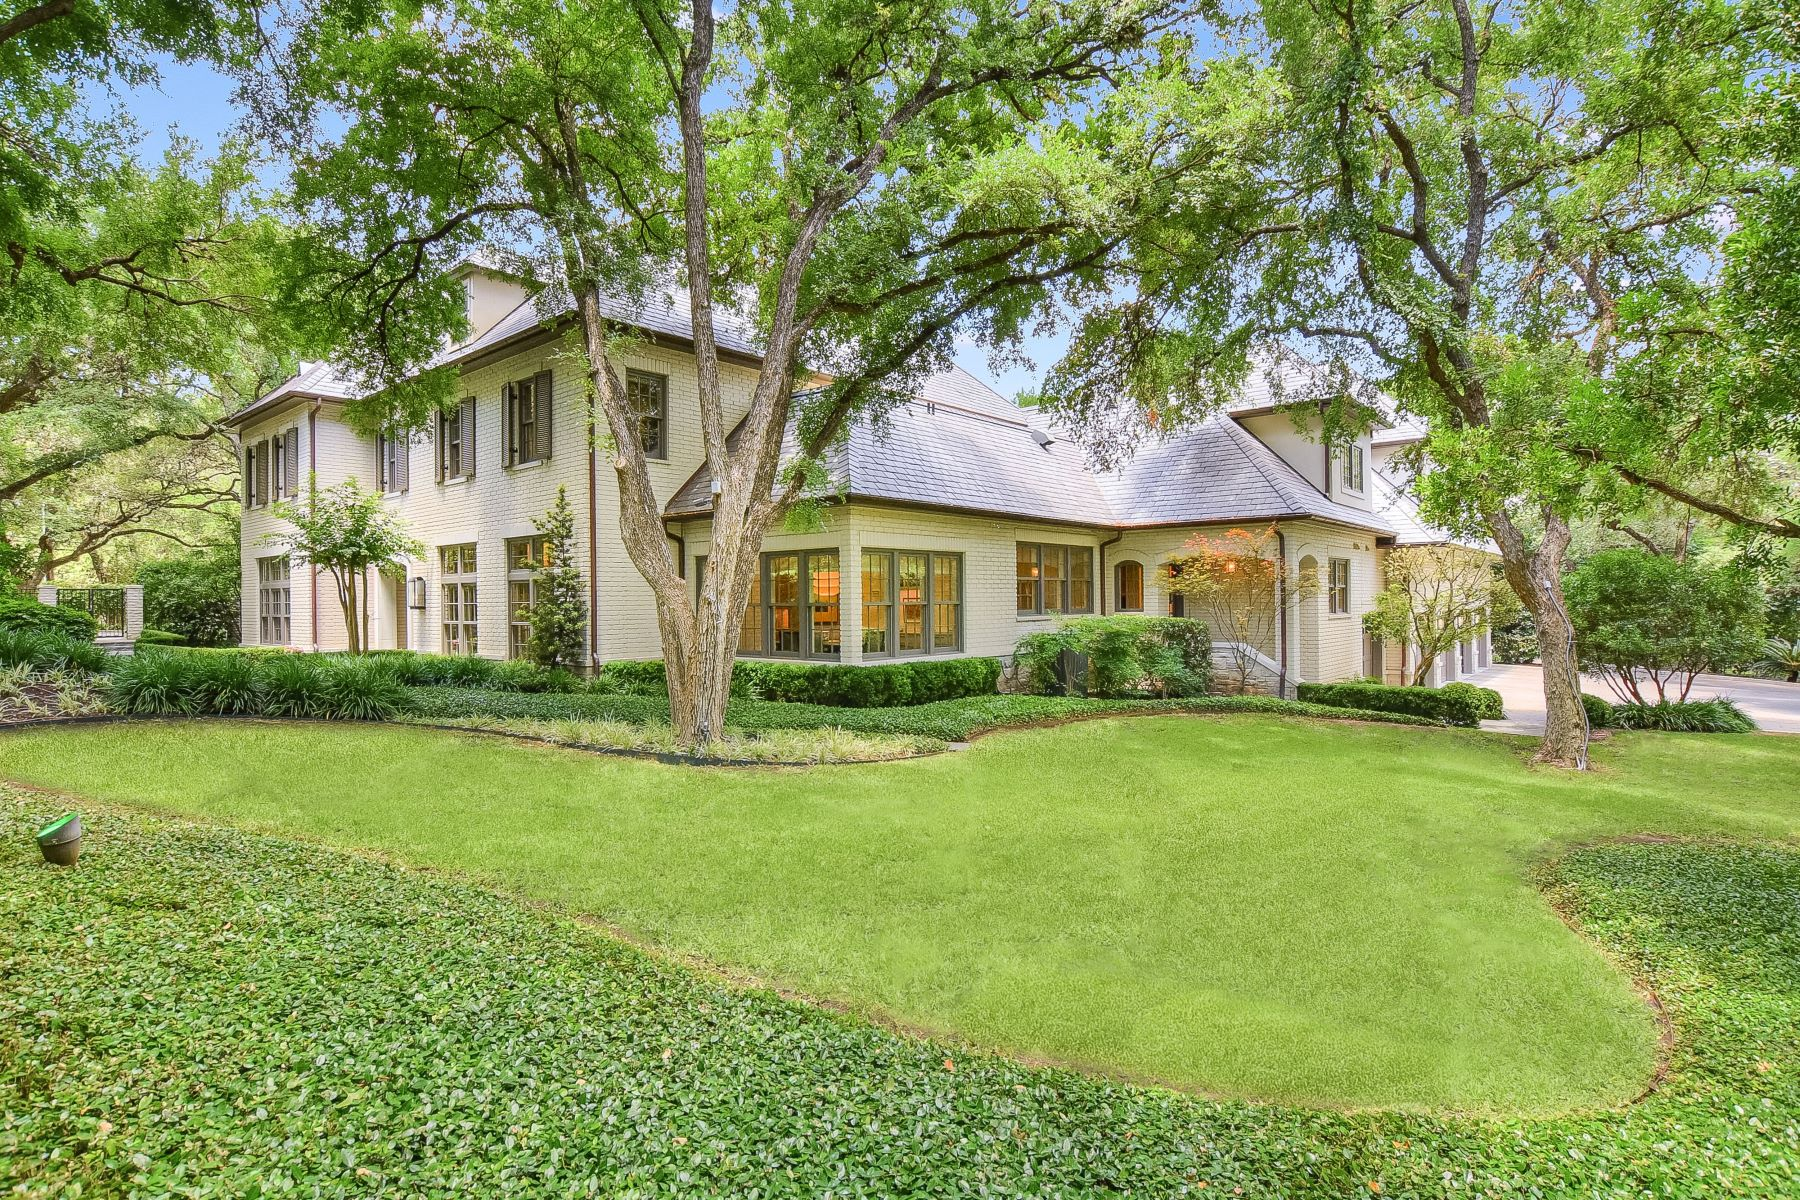 Single Family Homes for Active at Olmos Park Estate 777 East Olmos Drive San Antonio, Texas 78212 United States